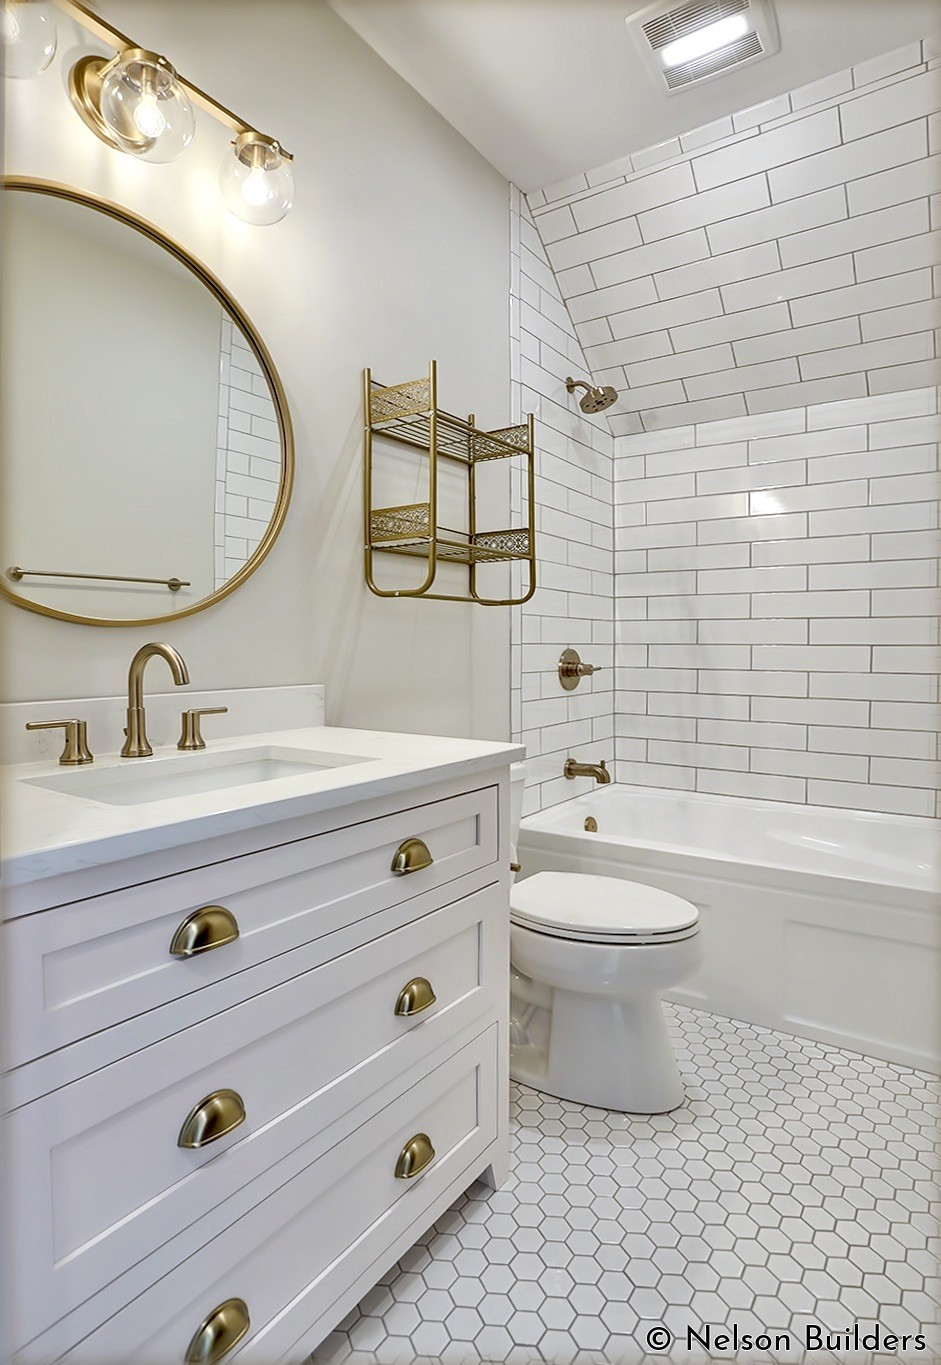 One bedroom features a private bathroom that is decorated with white subway tile, a light rose colored vanity, and brushed brass accents.